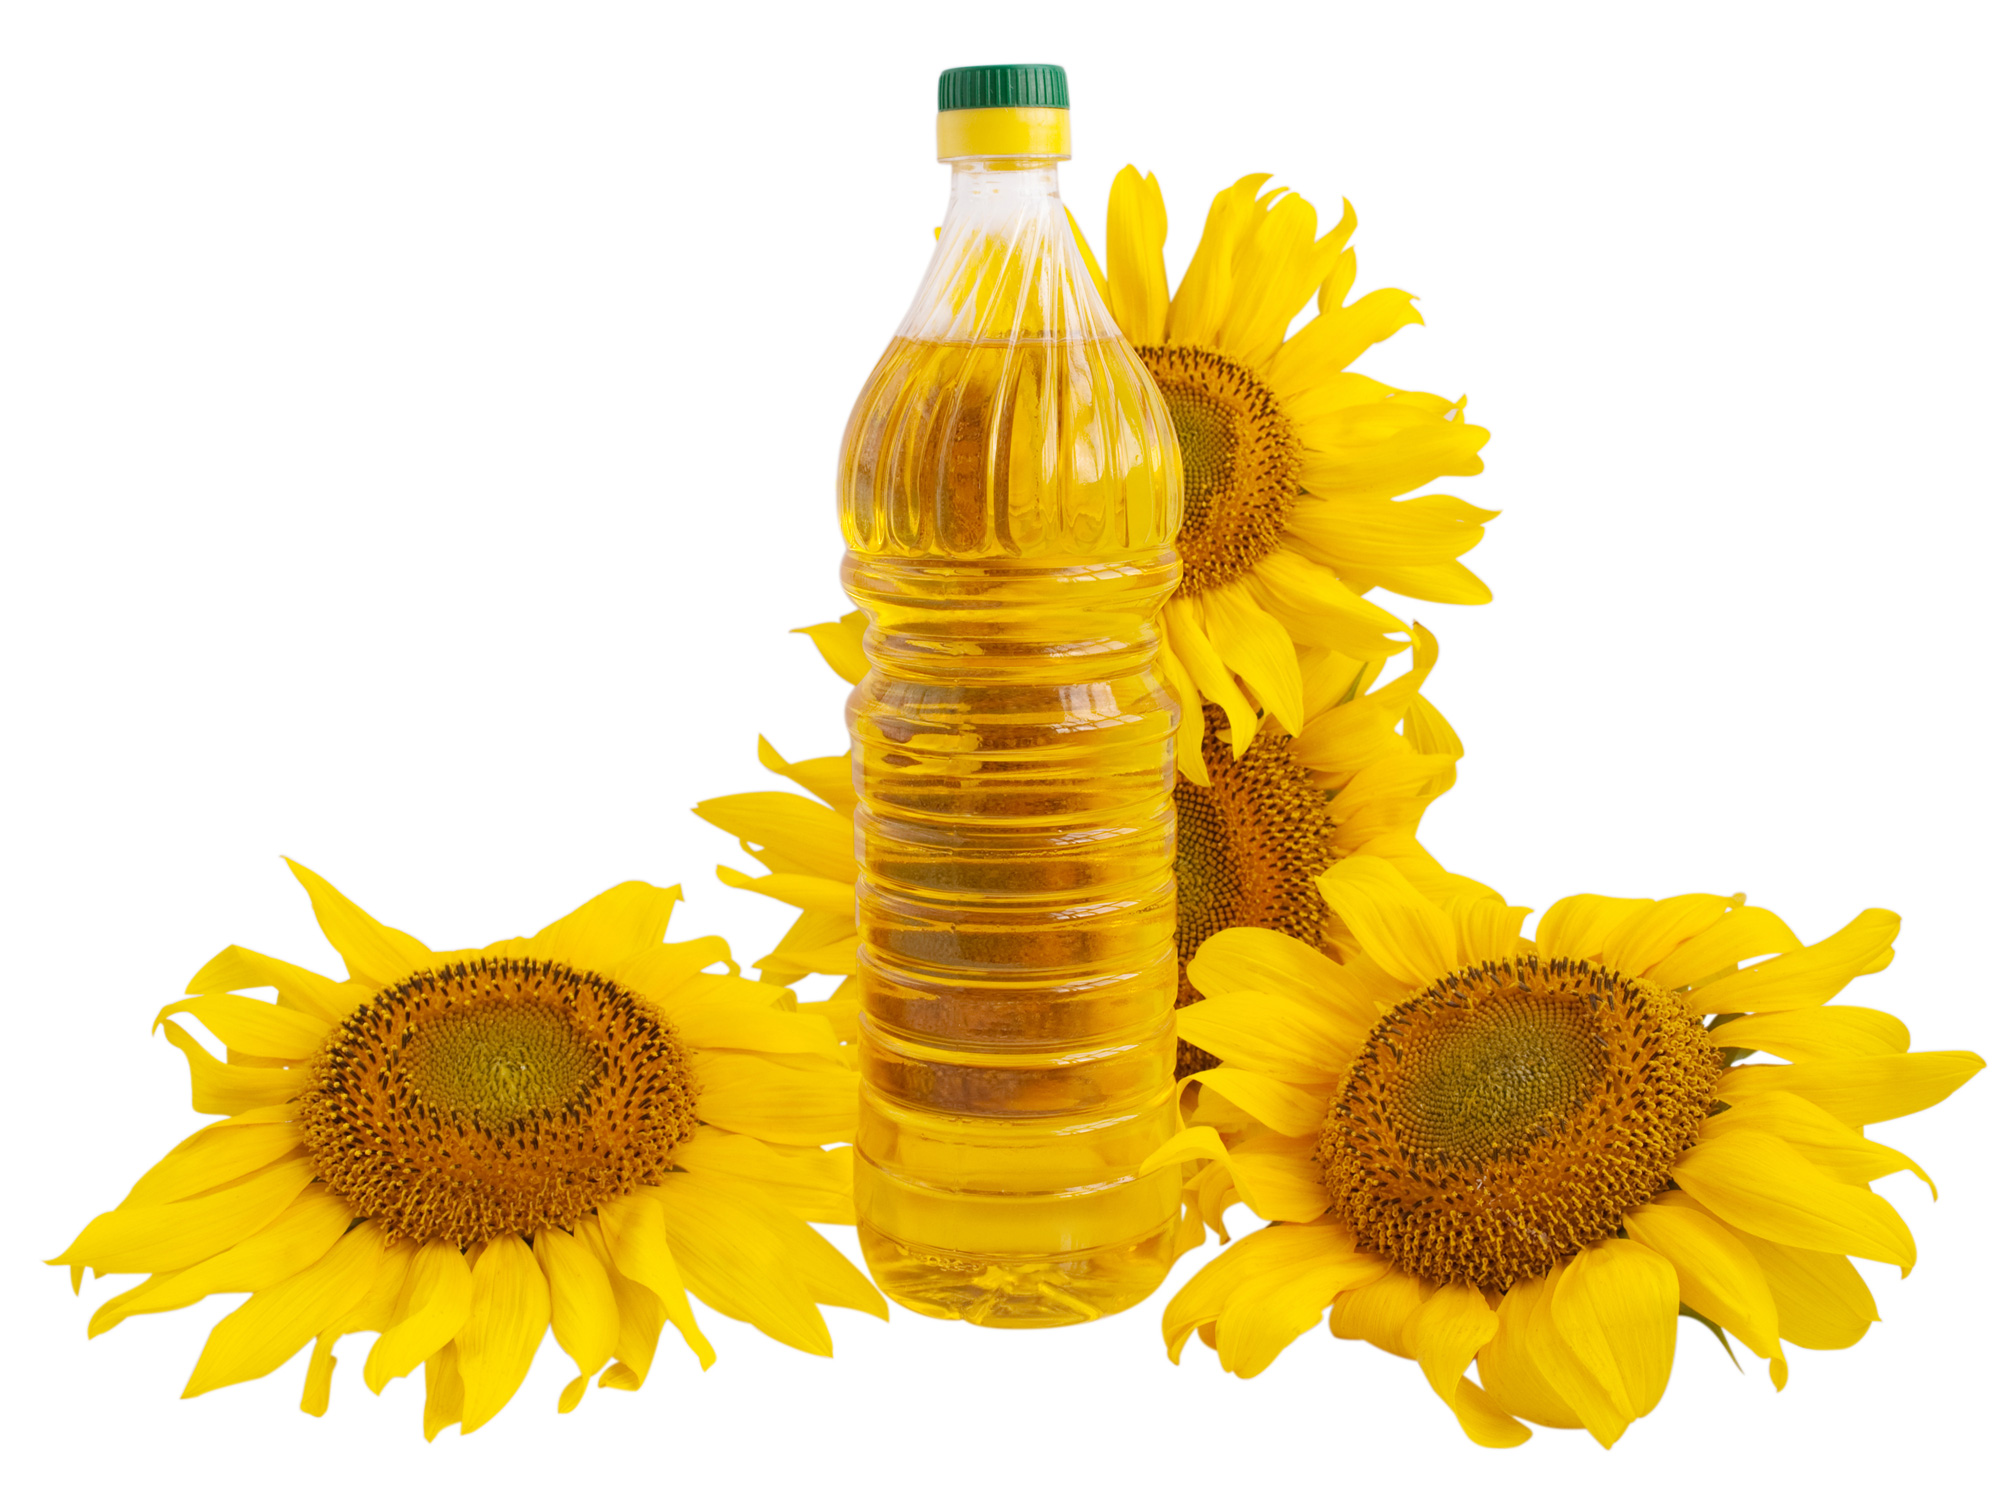 REFINED SUNFLOWER OIL, WINTERIZED SUNFLOWER OIL, ODORLESS SUNFLOWER OIL, REFINED CRUDE SUNFLOWER OIL